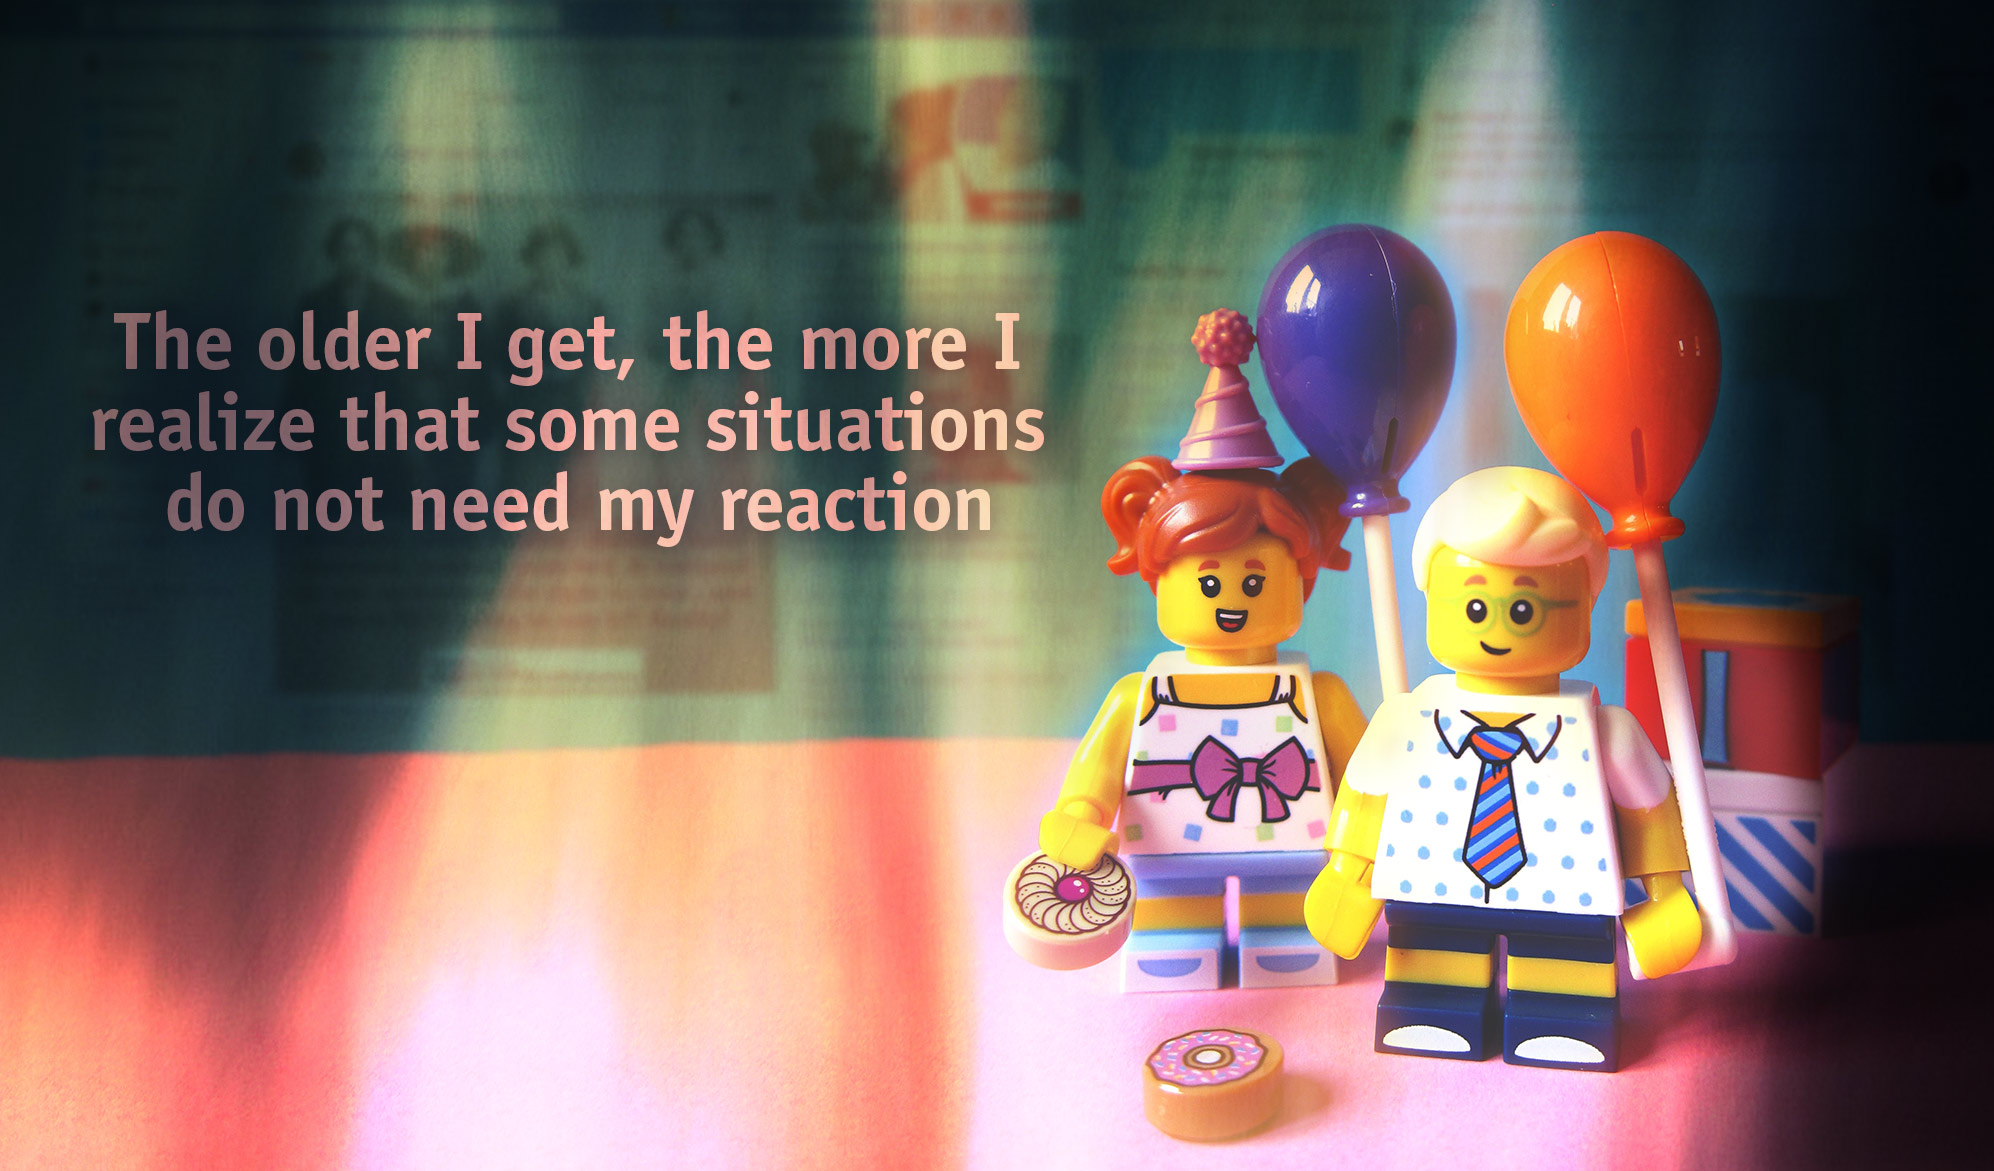 daily inspirational quote image: 2 LEGO mini people holding balloons with blurred screenshots of facebook and twitter in the background